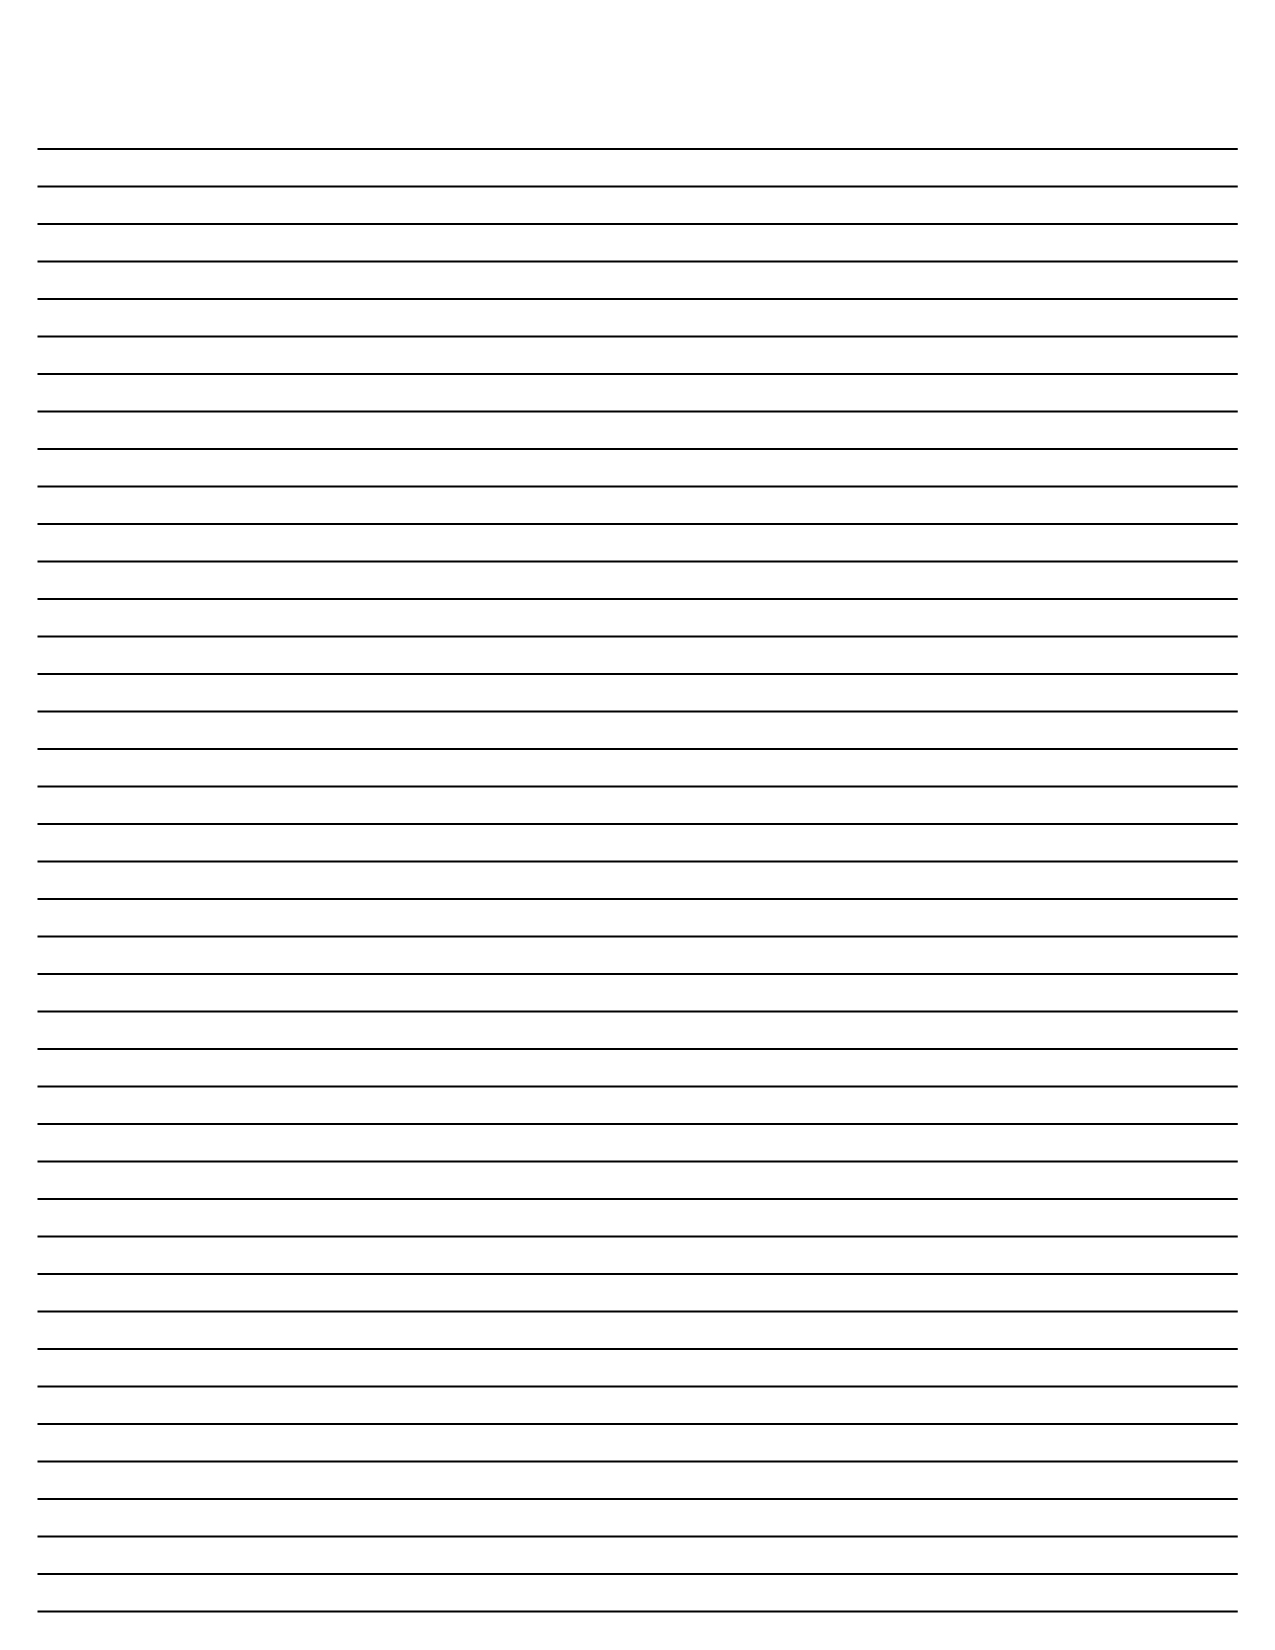 handwriting lined paper template